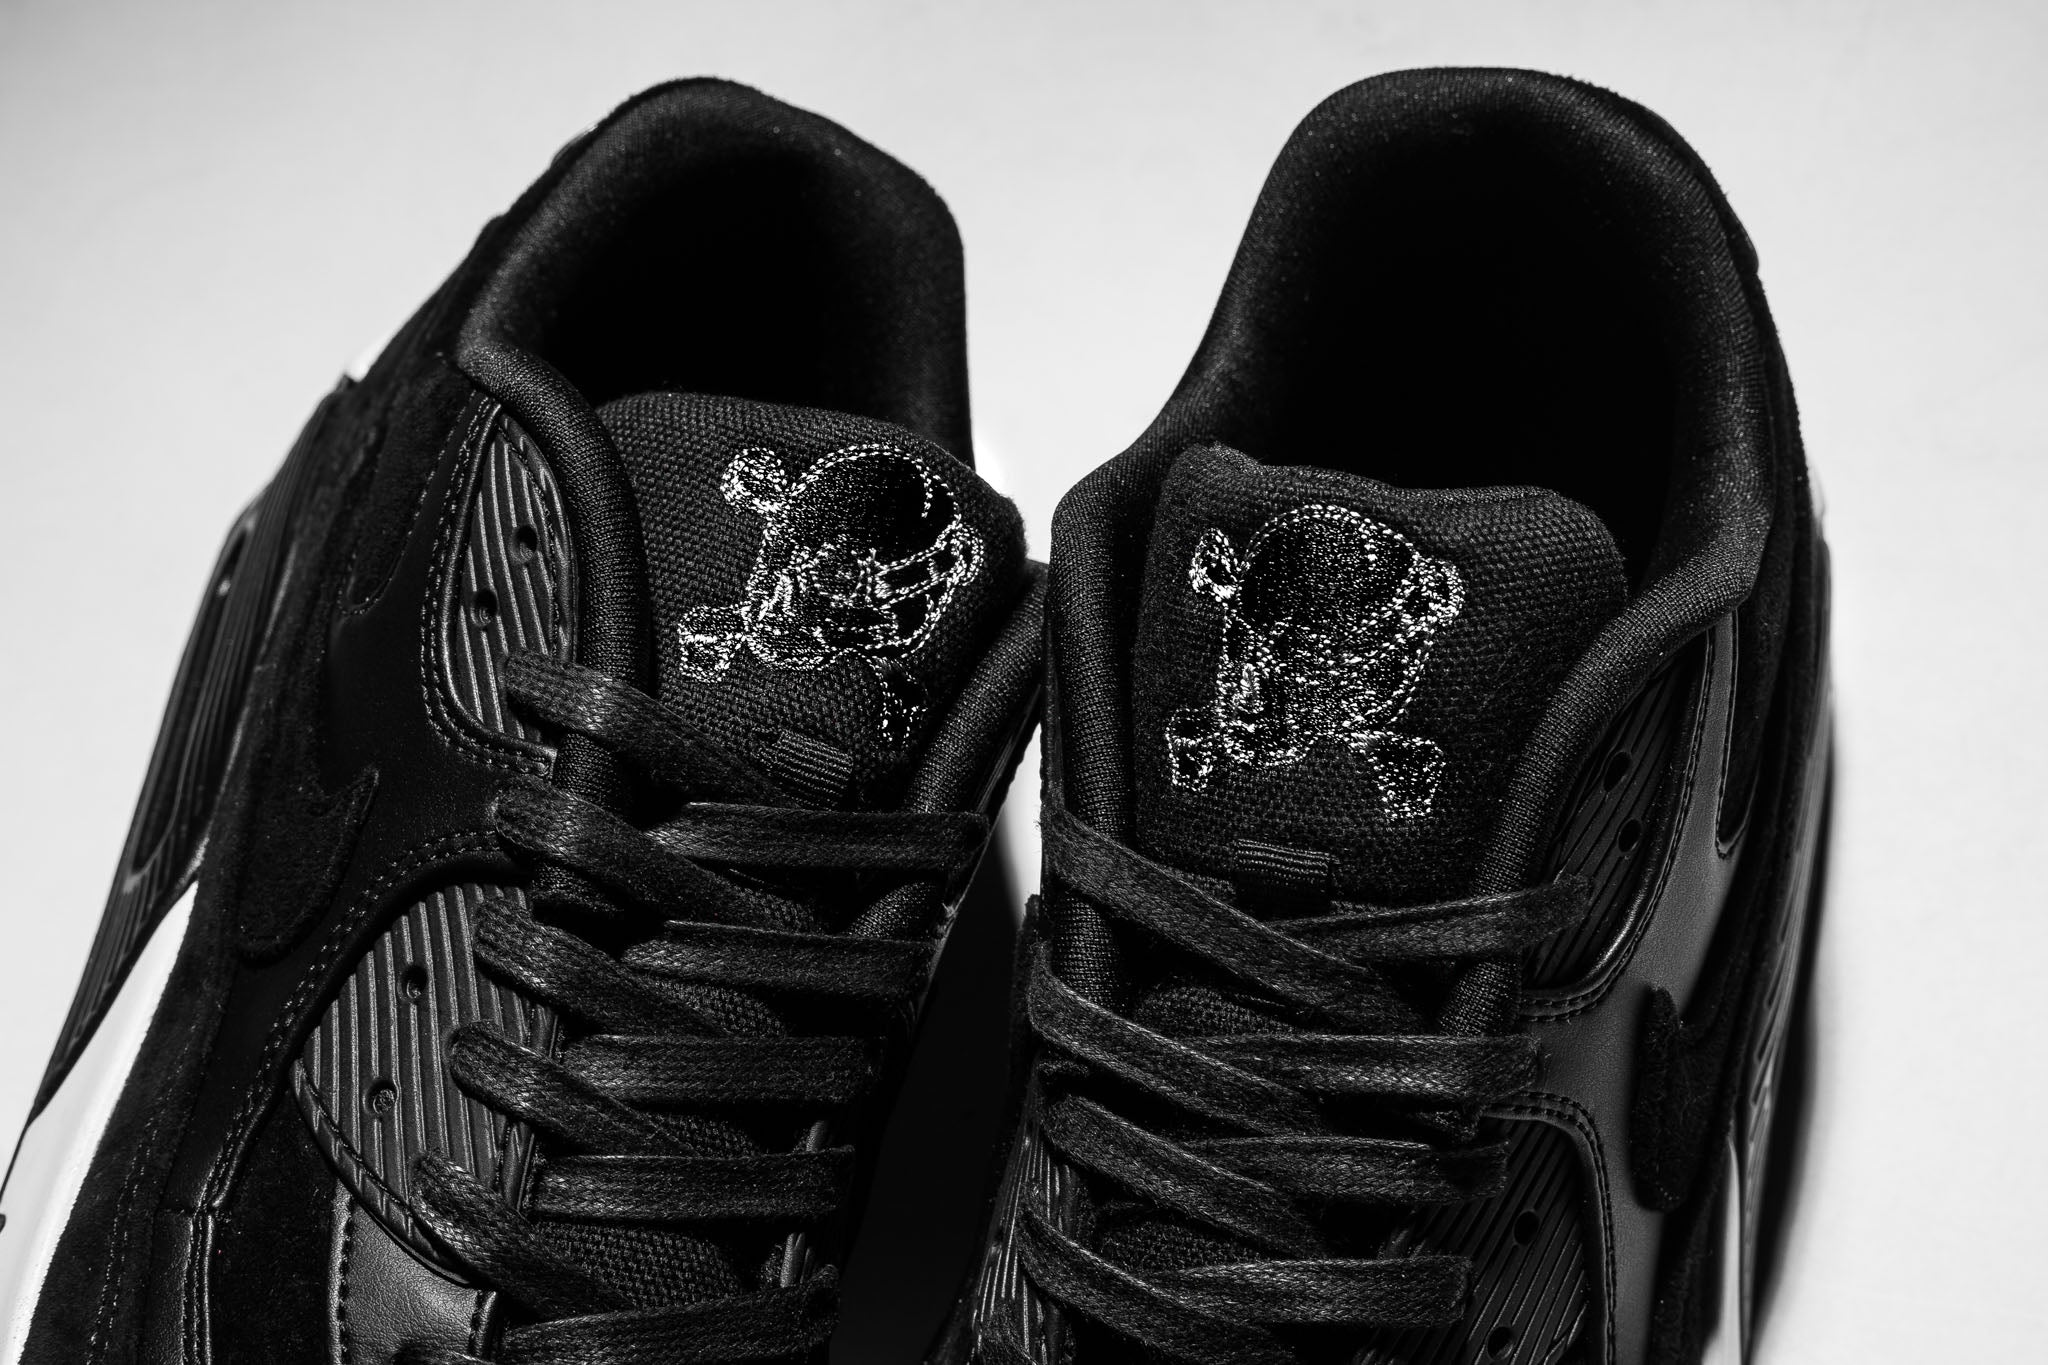 the latest ff73a e70e3 After 10 years of absence, the skull and crossbones once found on the  footwear tribute to legendary long-distance runner and Olympian Steve  Prefontaine ...